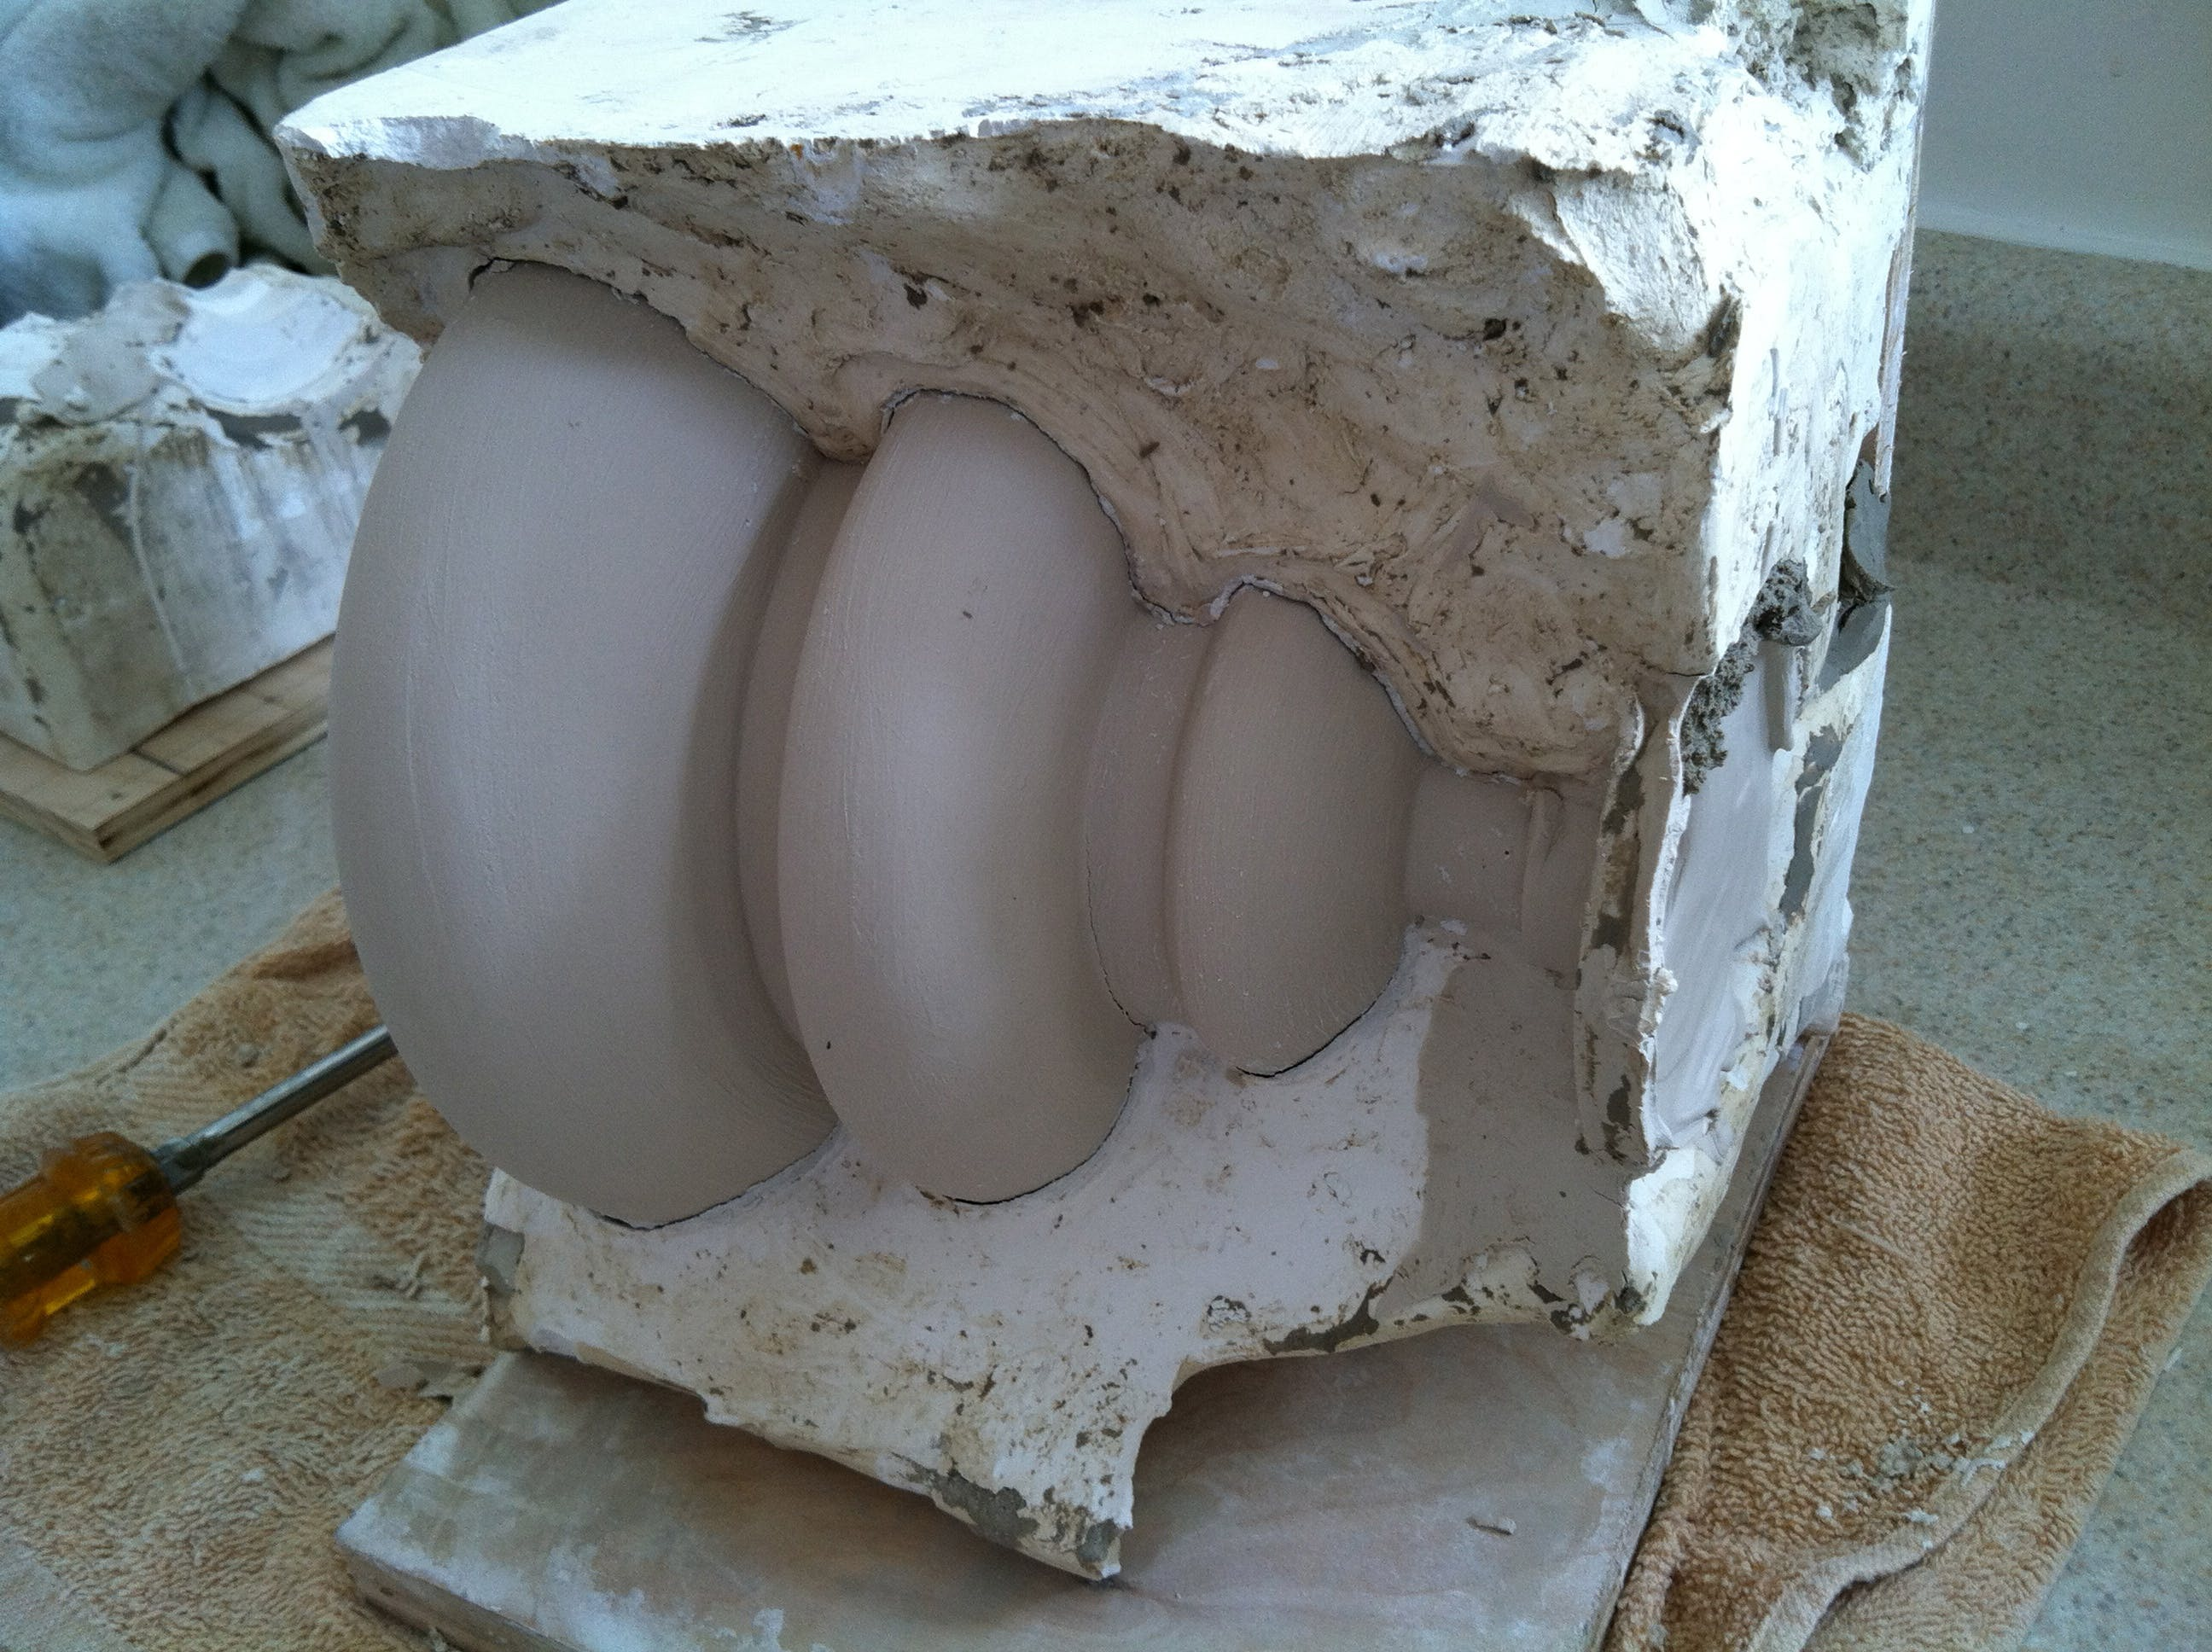 Apoidea Lamp Design and Prototype | Kimberly Hylton | Archinect for Clay Lamp Design  157uhy